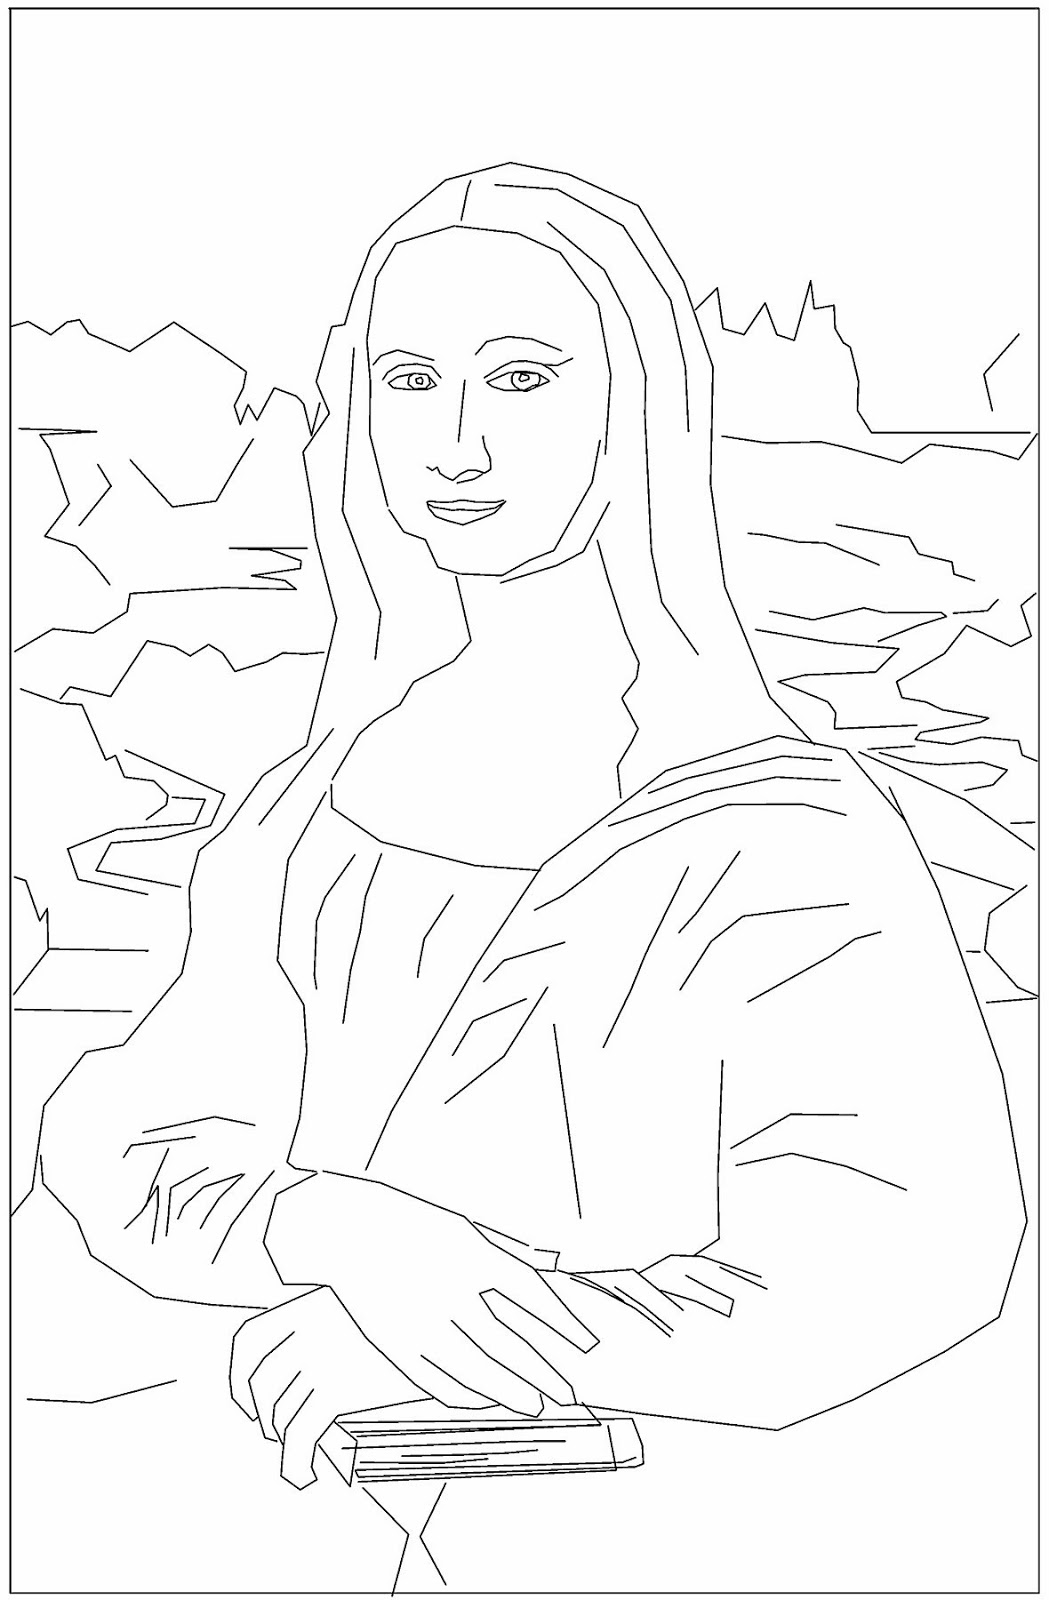 Drawing Mona Lisa Coloring Sheet Coloring Pages Mona The Vire Coloring Pages